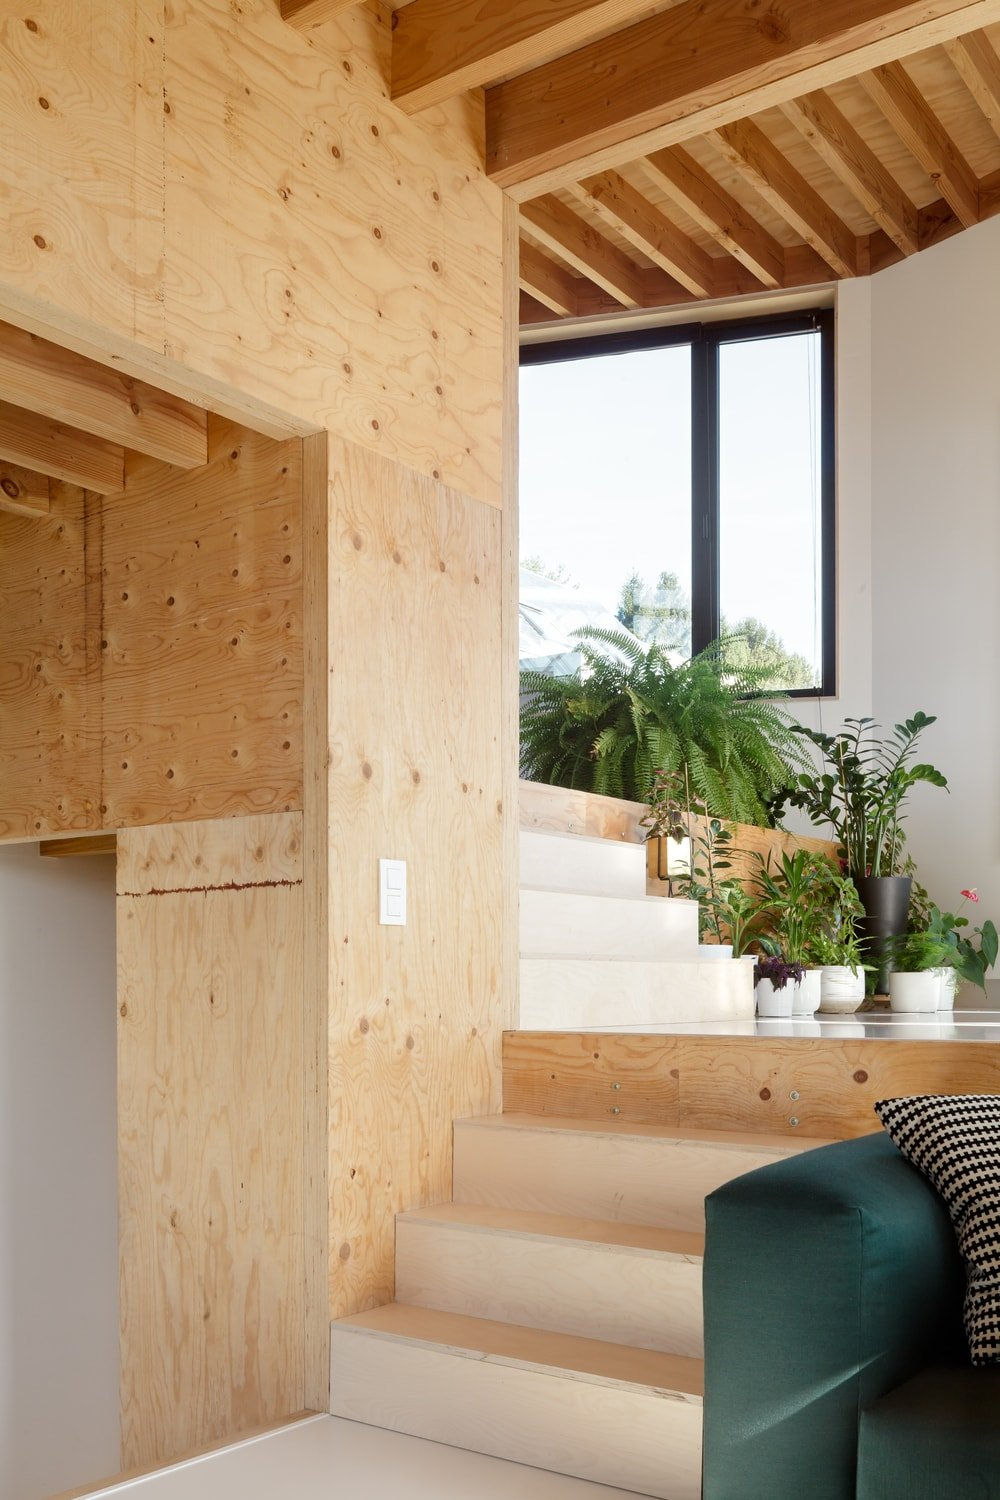 The wooden steps on the side of the sofa matches well with the wooden pillars, walls and beamed ceiling.